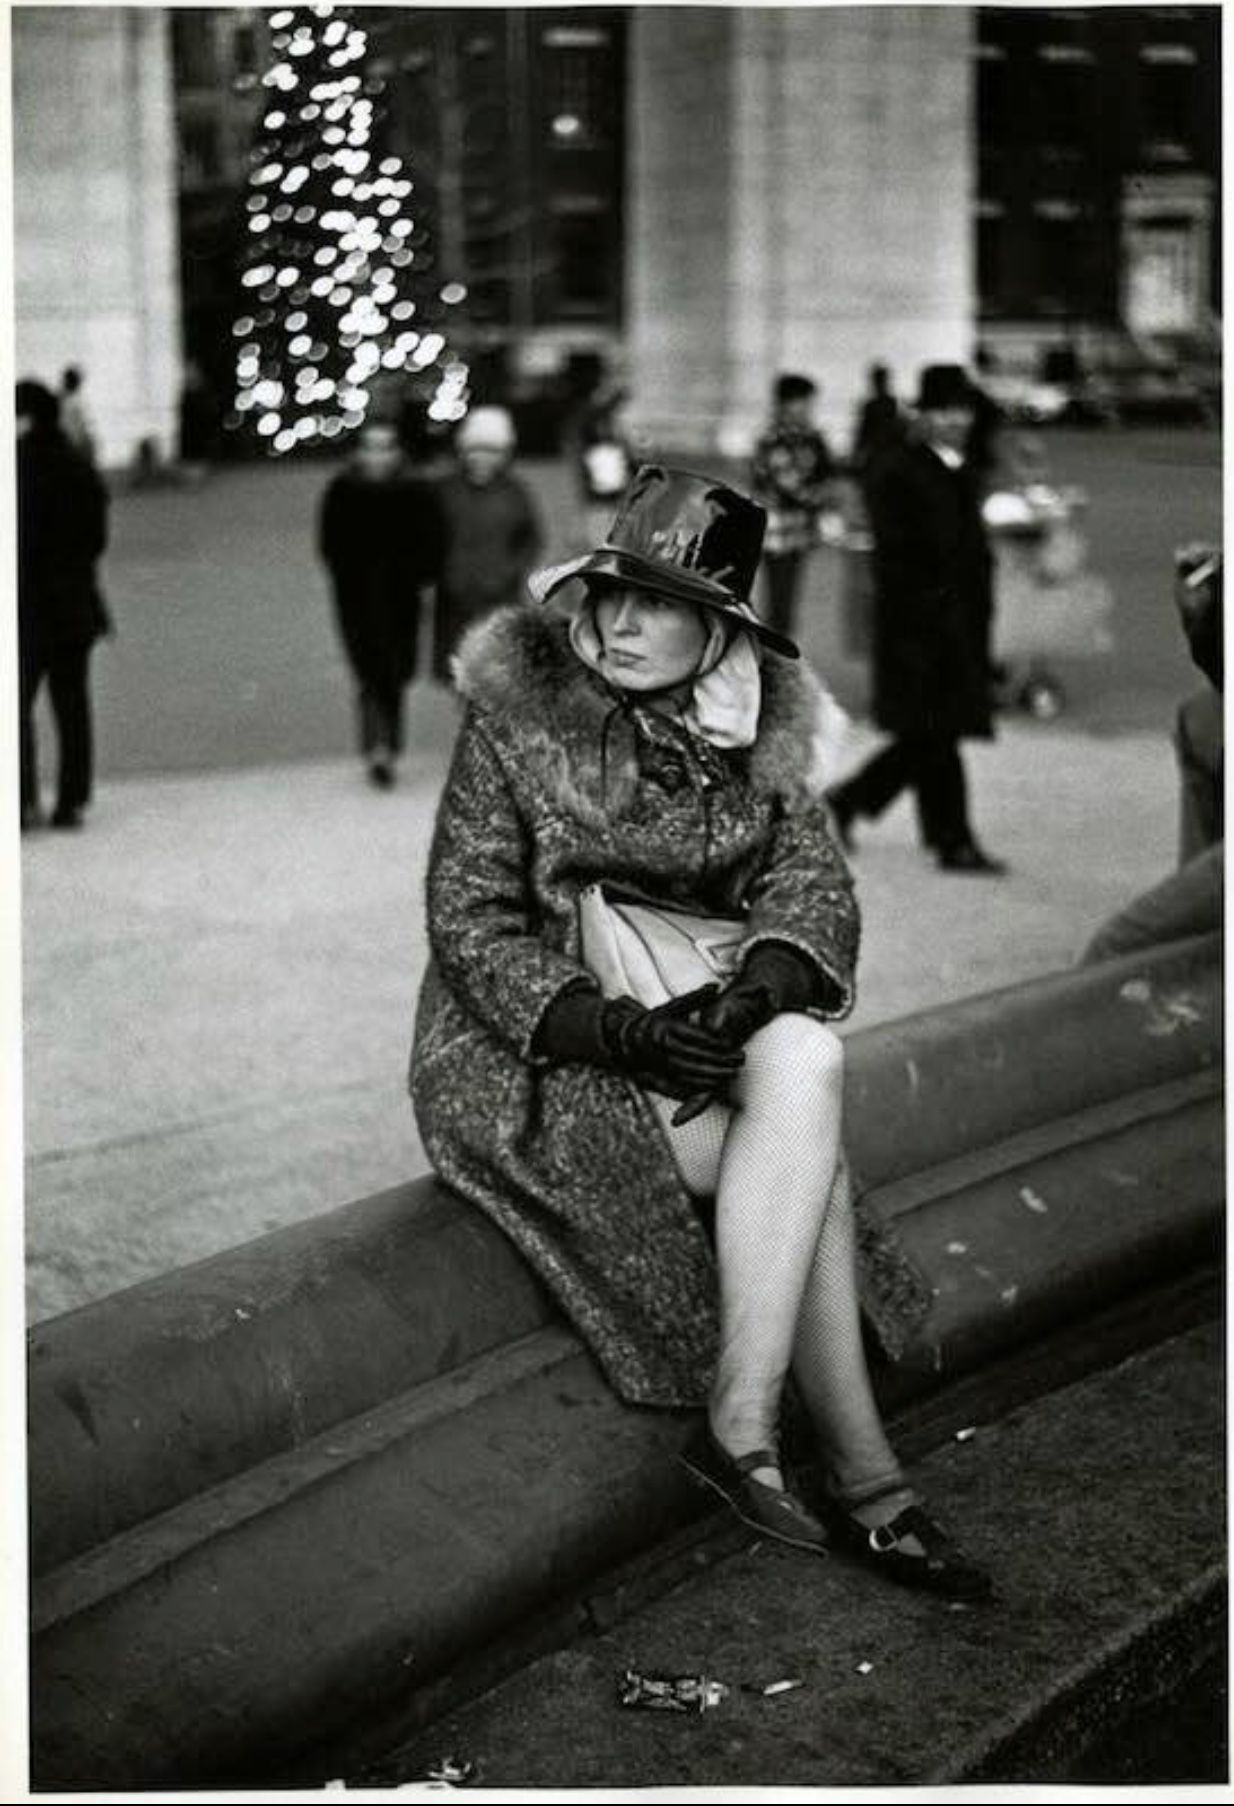 1968 woman sitting in washington square park ledge of fountain with the parks christmas